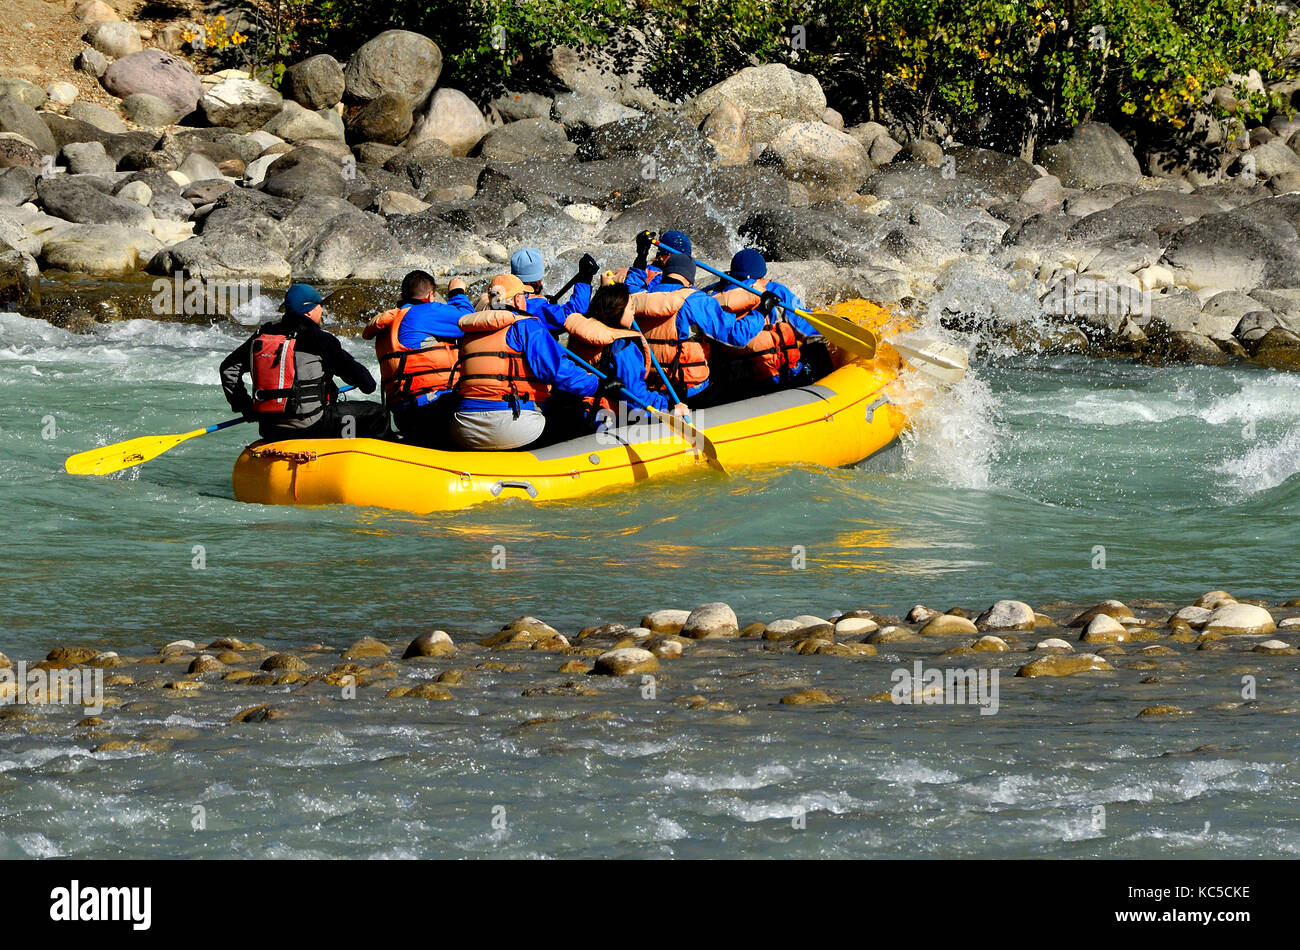 A group of tourists river rafting on the Athabasca River in Jasper National Park, Alberta Canada. - Stock Image